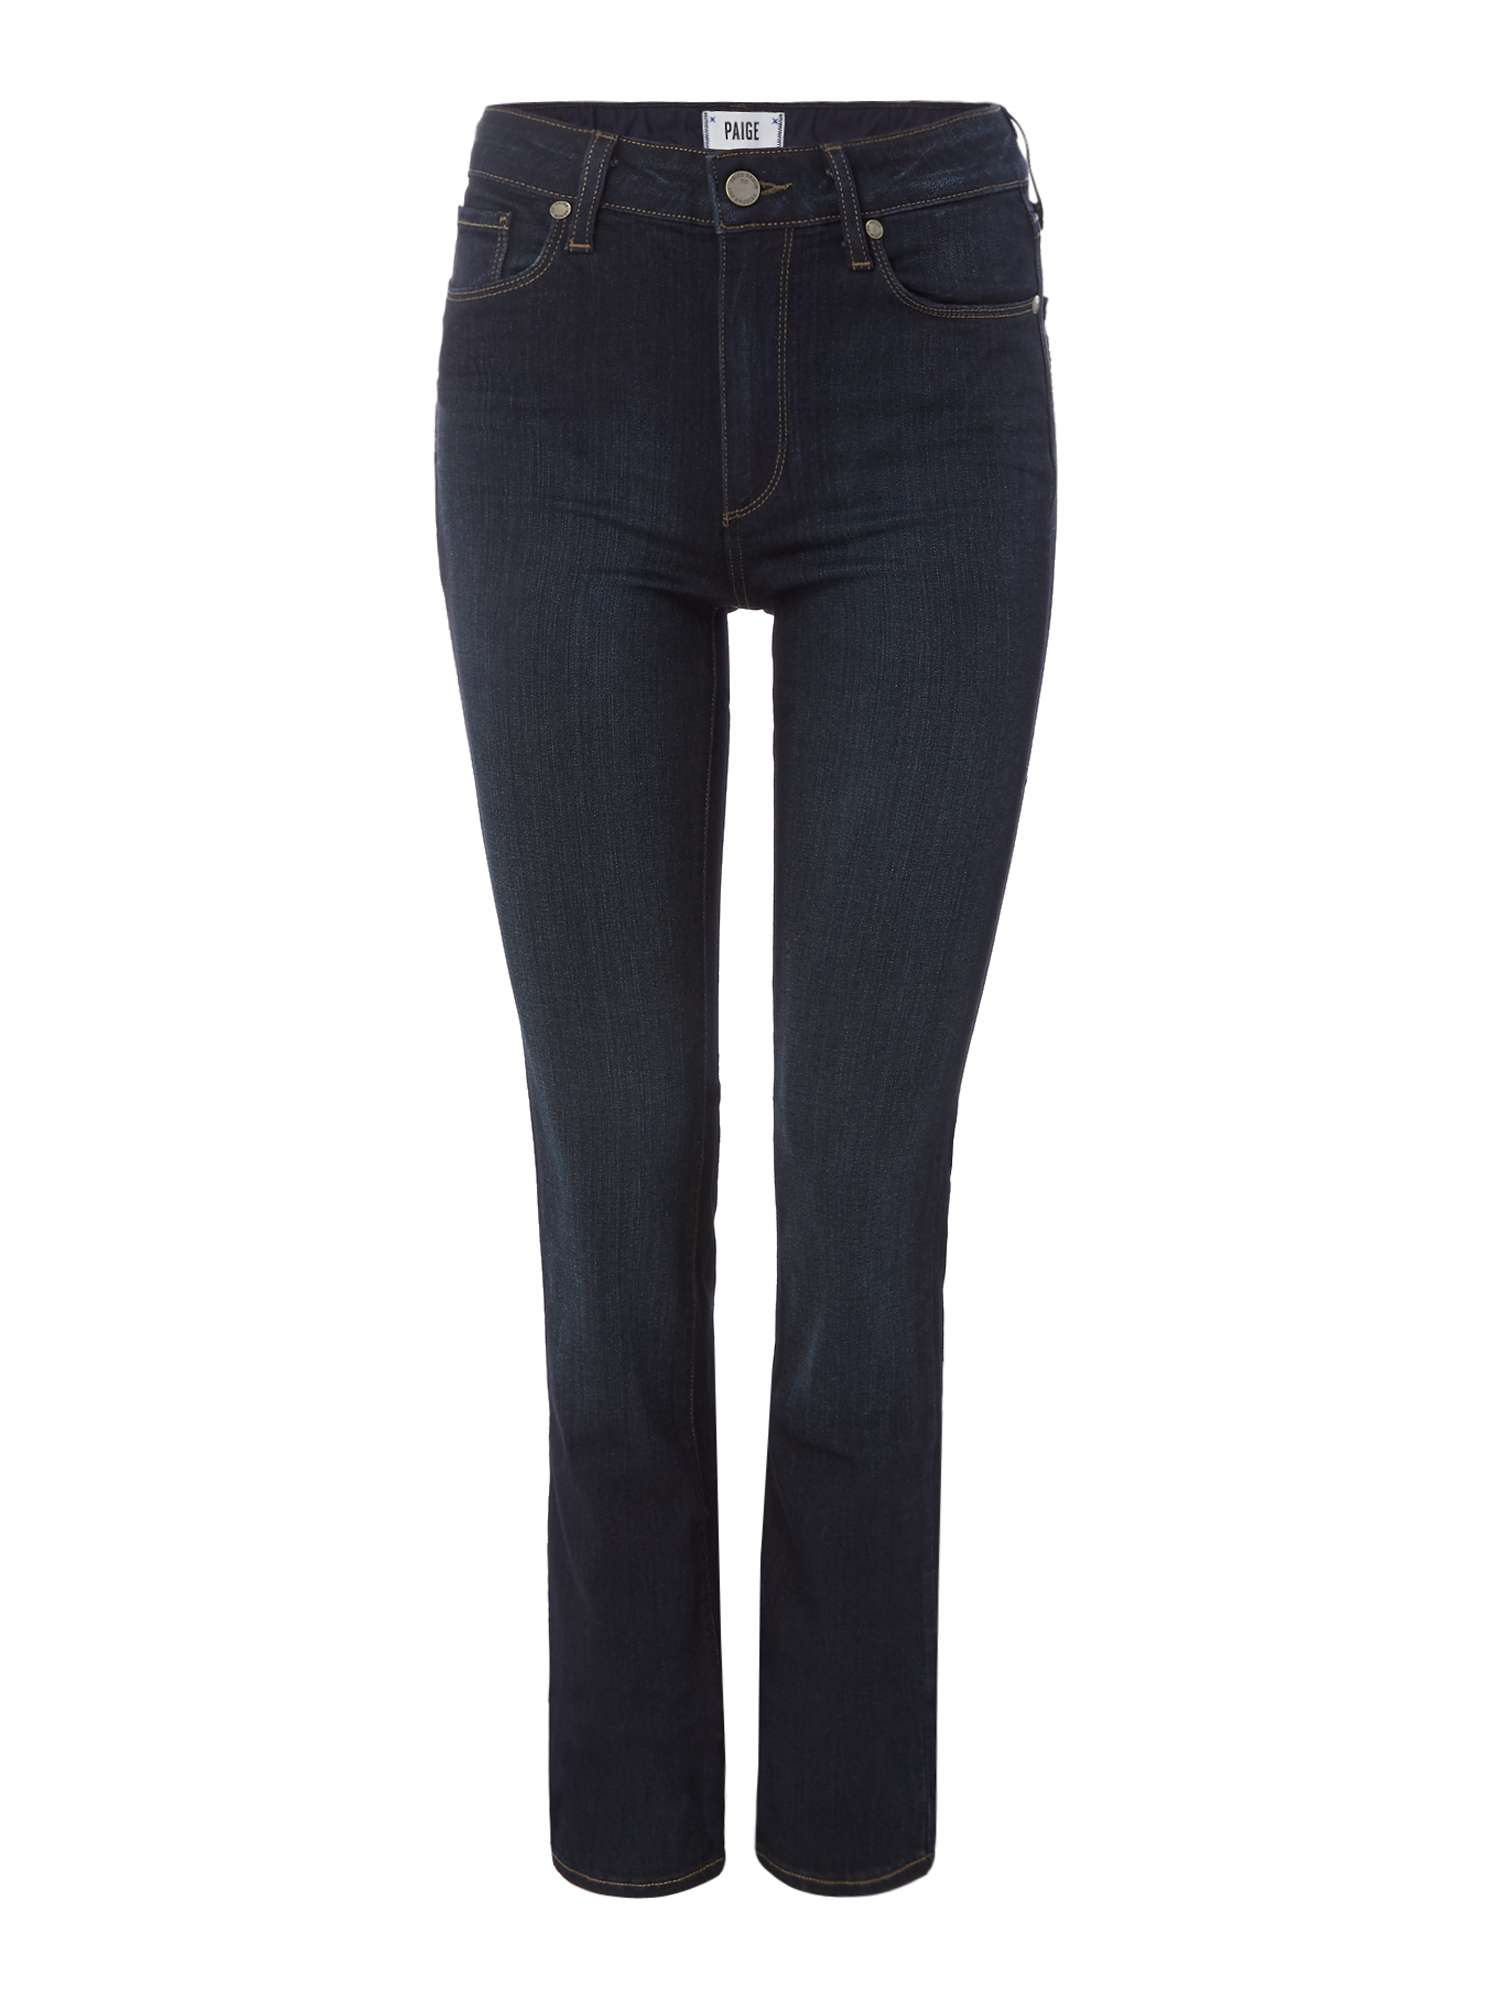 Paige Hoxton High Rise Straight Jeans in Mona ...